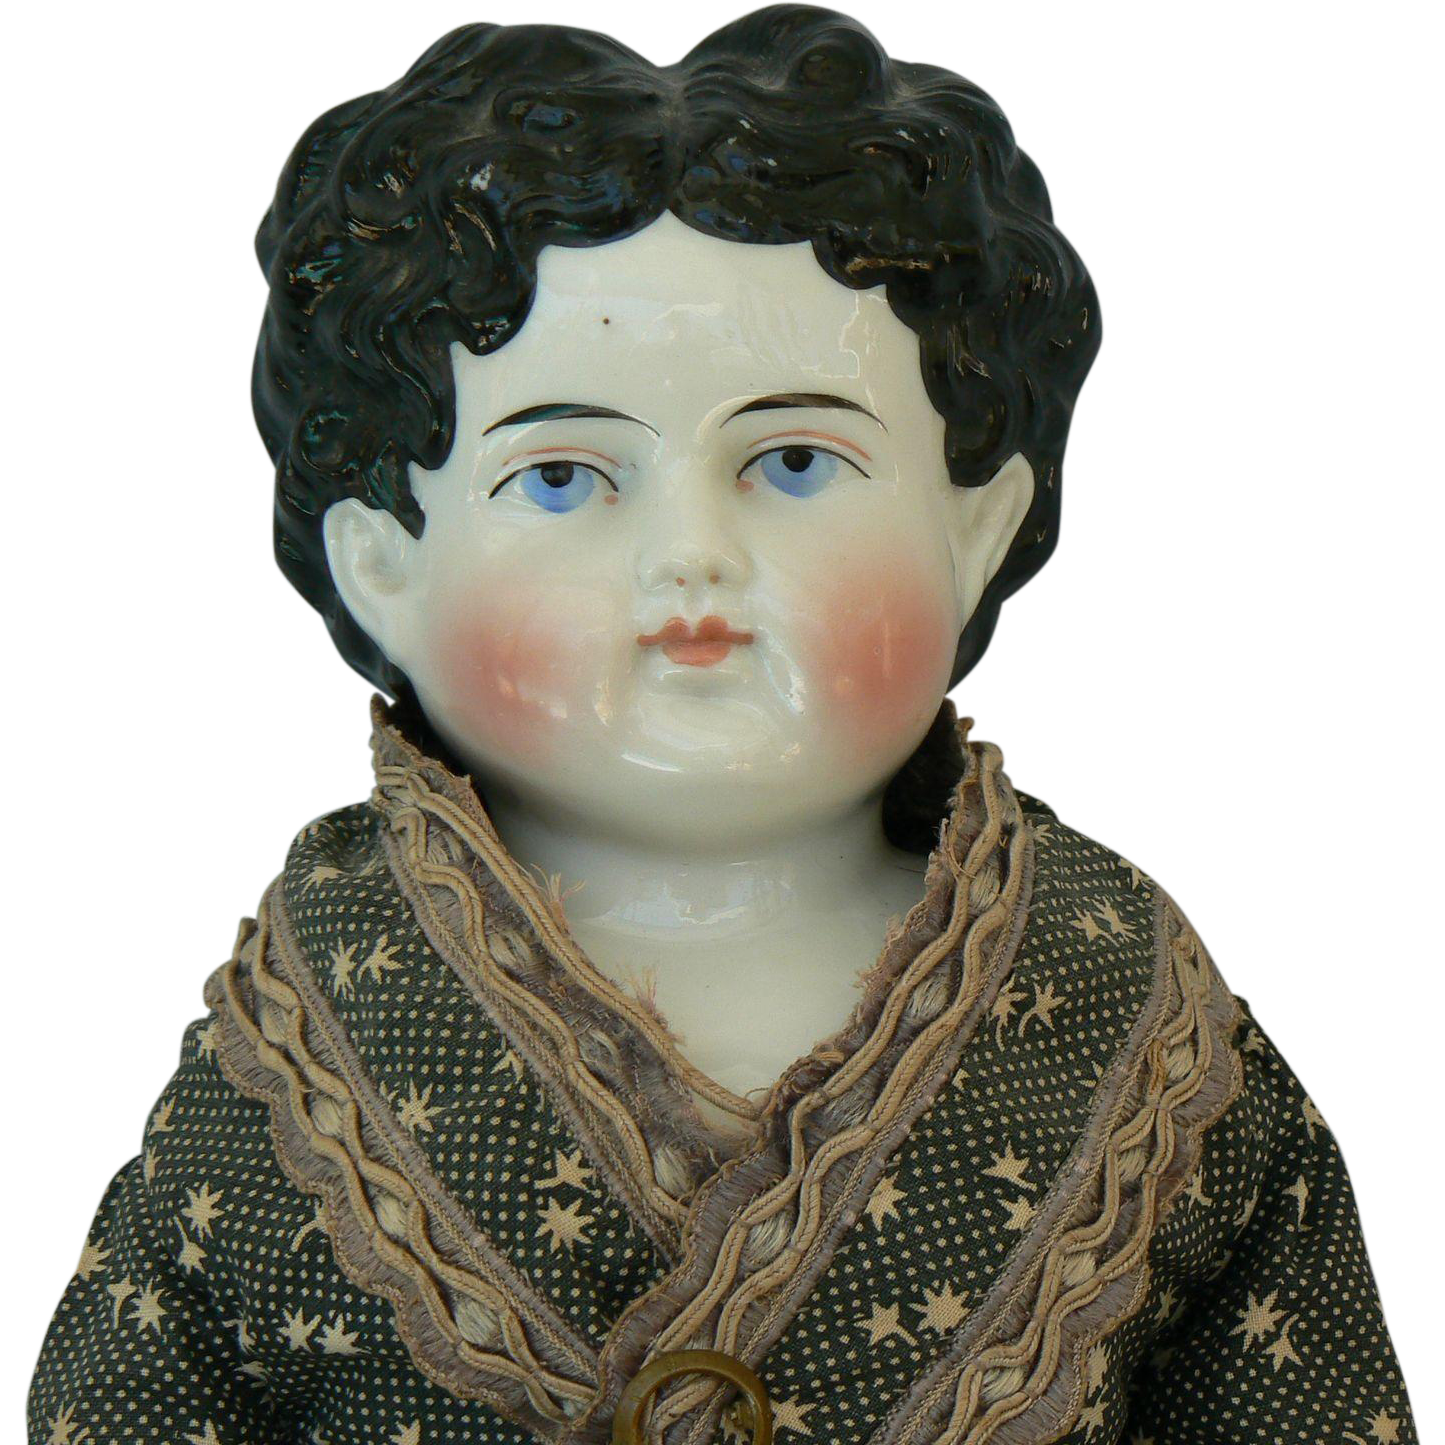 Very Pretty German China Head doll all original.